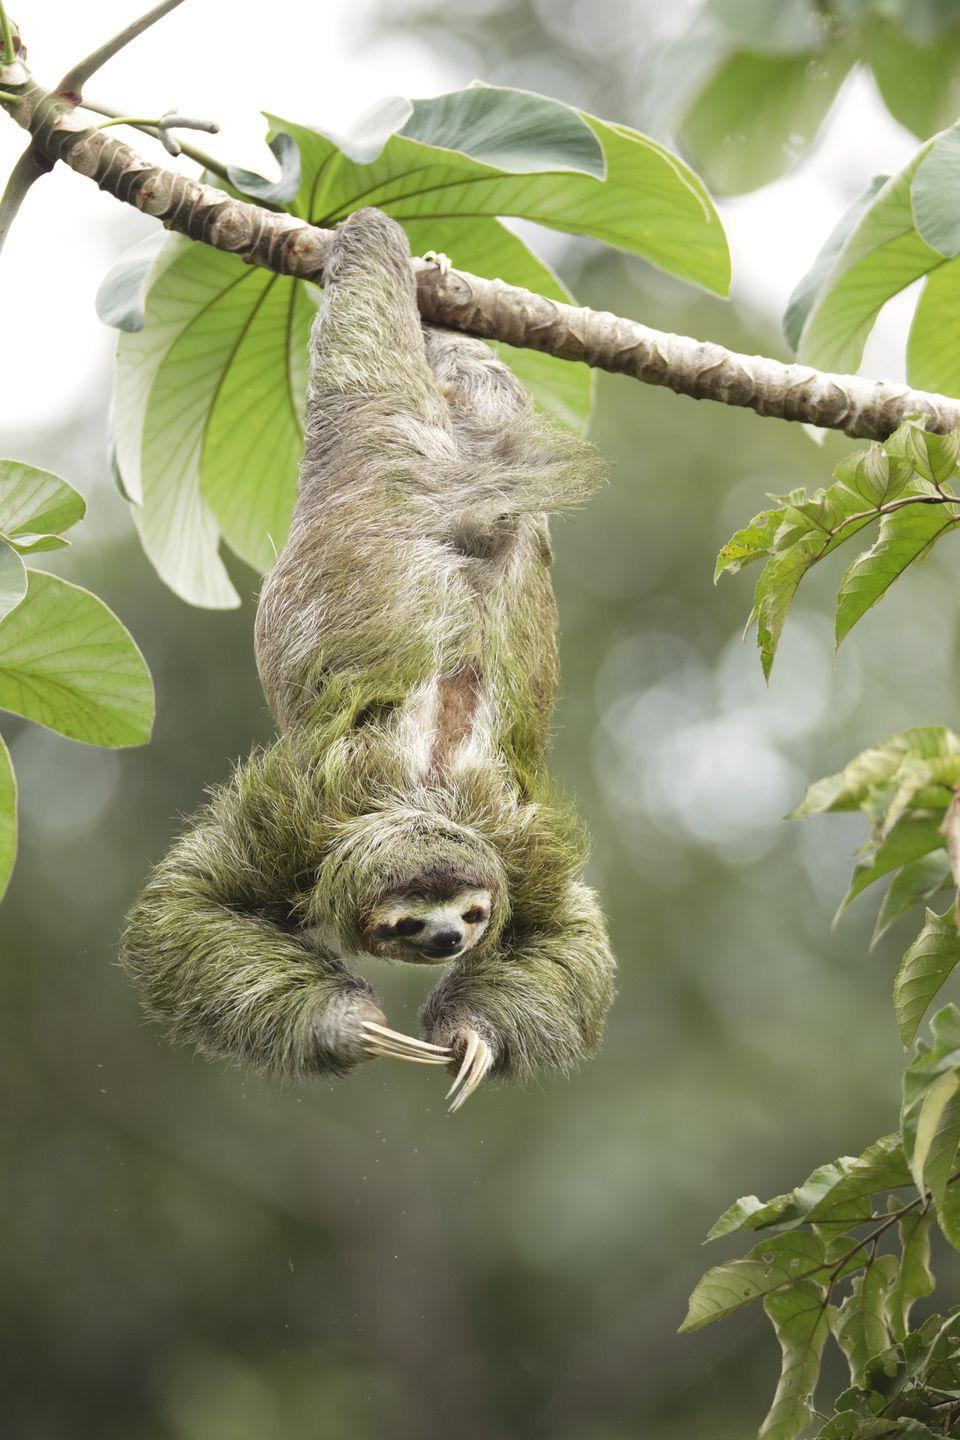 """<p>Spending the majority of their time hanging from tree branches seems like it would make it hard to breath, but according to research from Swansea University<a href=""""https://www.swansea.ac.uk/science/news/howslothscanbreatheeasilyupsidedown.php"""" rel=""""nofollow noopener"""" target=""""_blank"""" data-ylk=""""slk:, sloths have been designed that way."""" class=""""link rapid-noclick-resp"""">, sloths have been designed that way.</a> Their internal organs are attached to the inside of their rib cage, which allows these mammals to hang upside down without putting pressure on their lungs. This allows them to breathe easy, no matter what position they're in.</p>"""